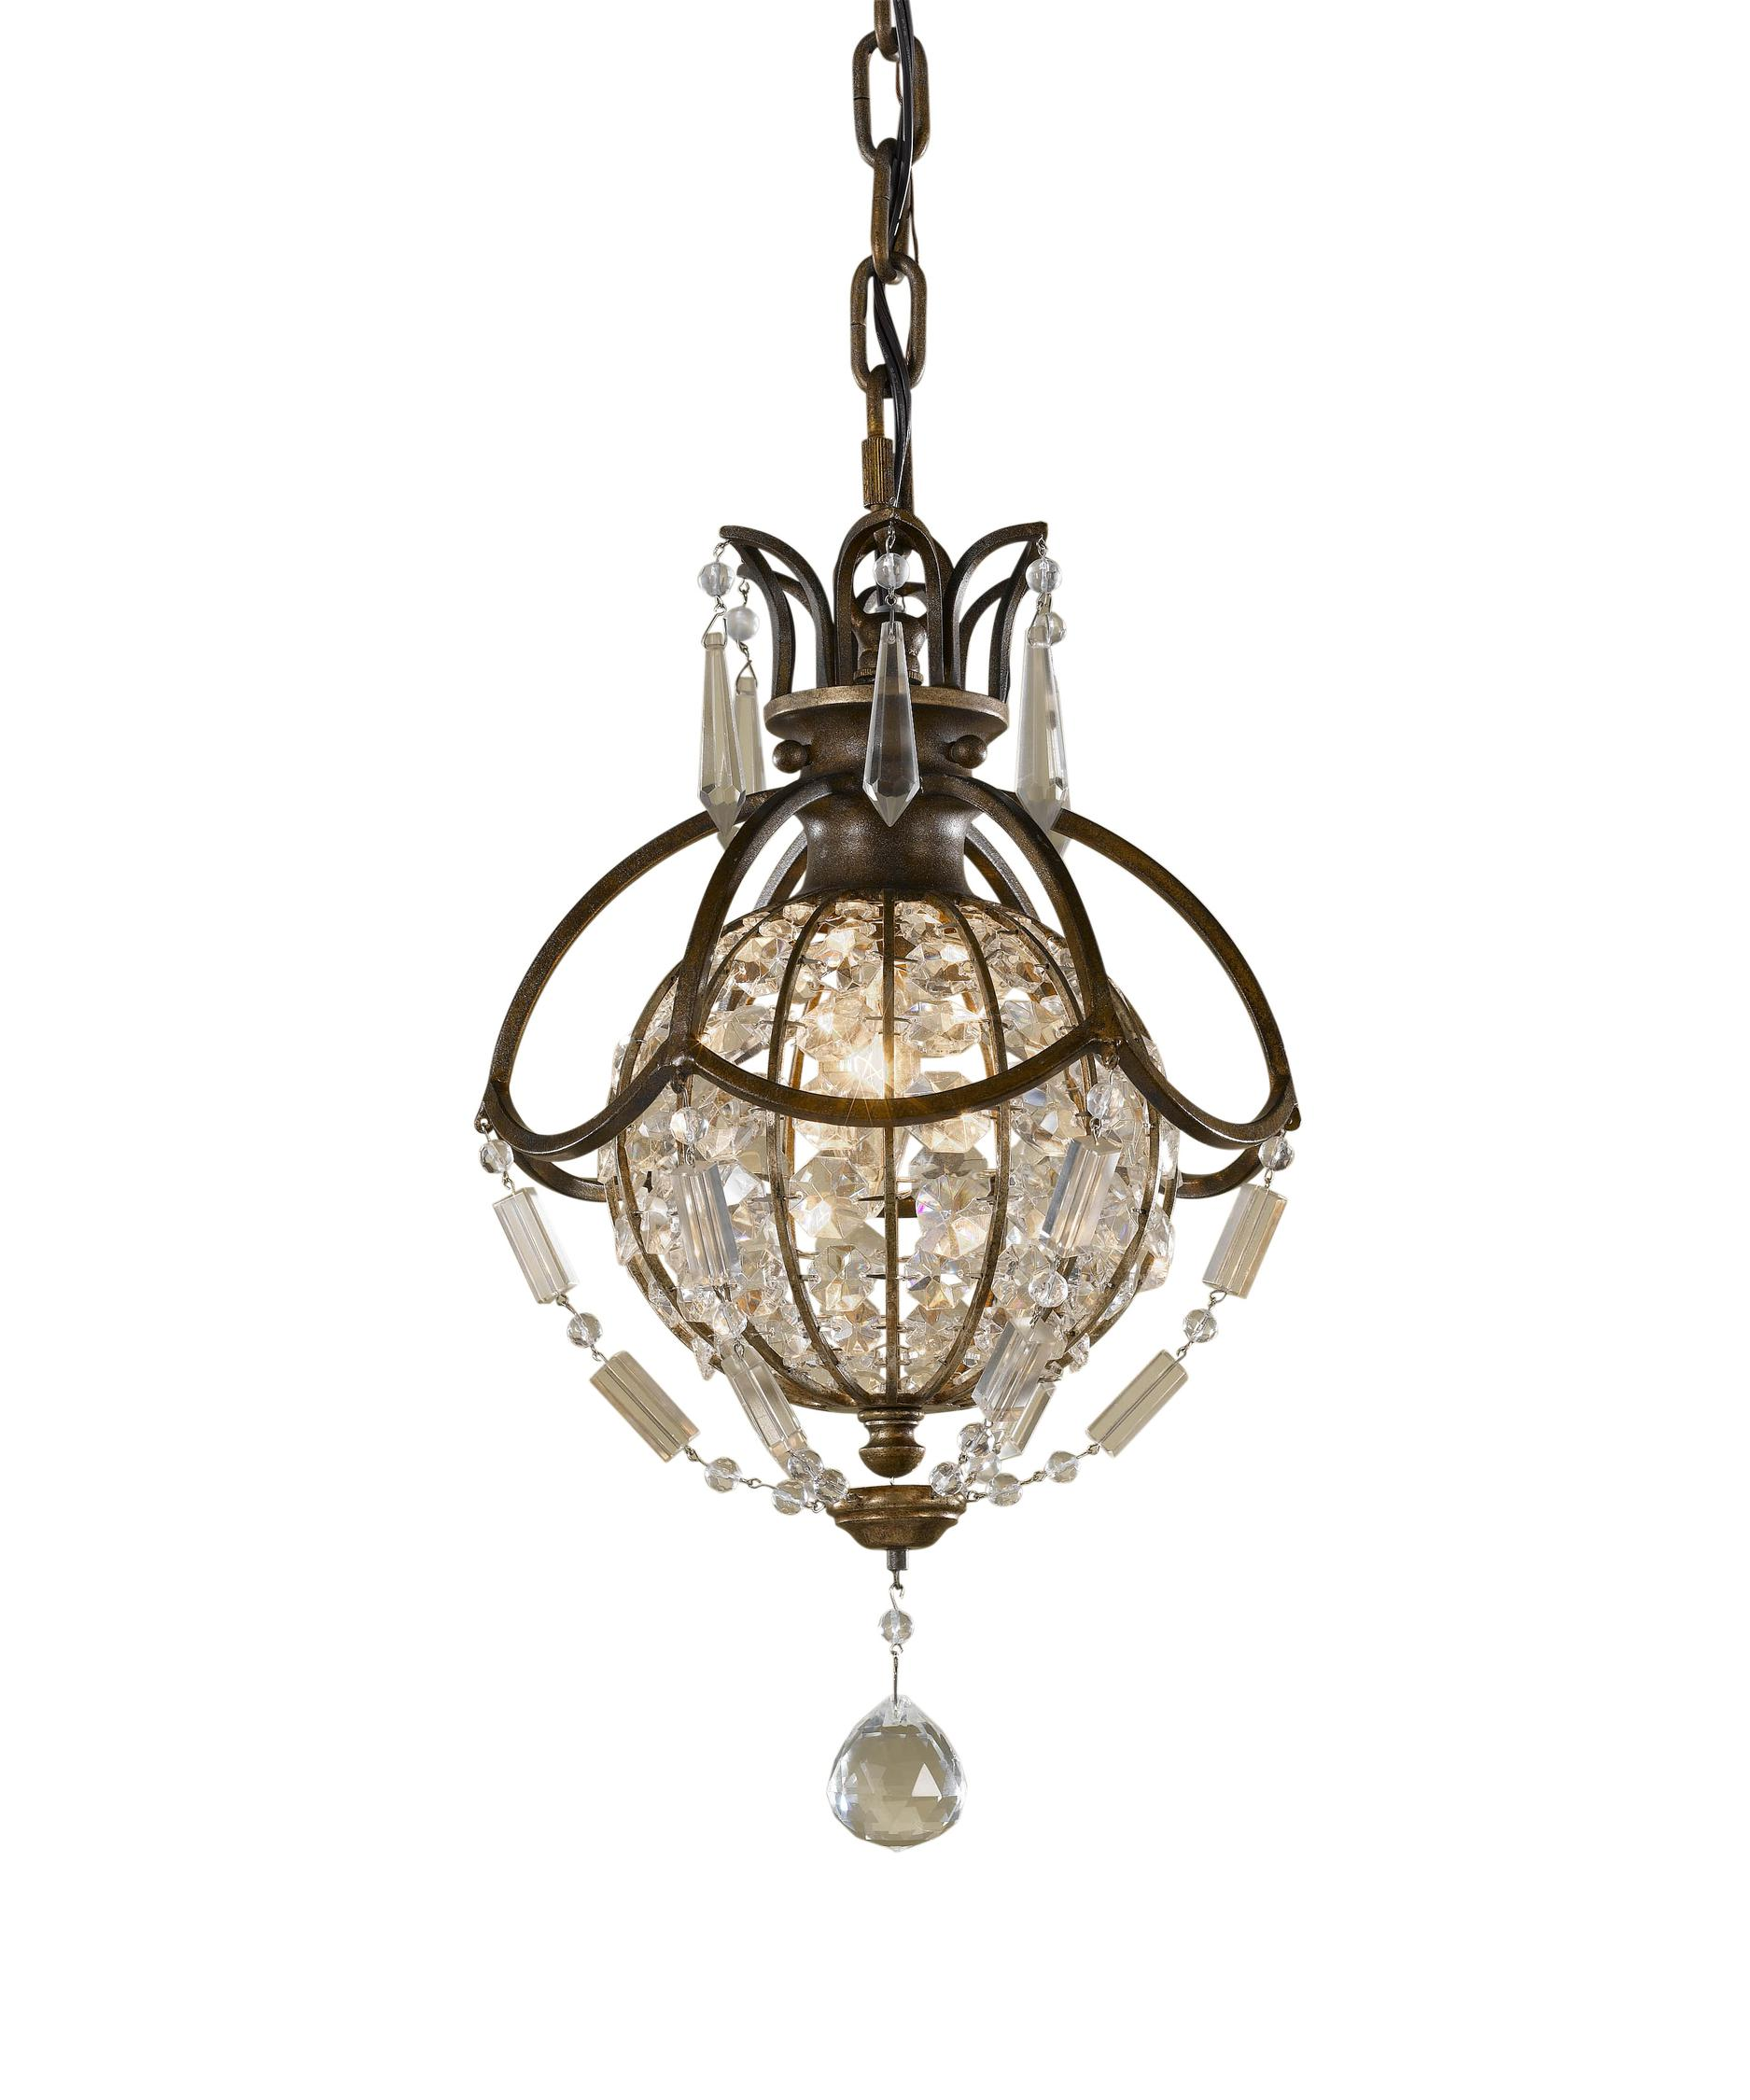 Murray Feiss | Feiss Chandeliers | Murray Feiss Lighting Fixtures